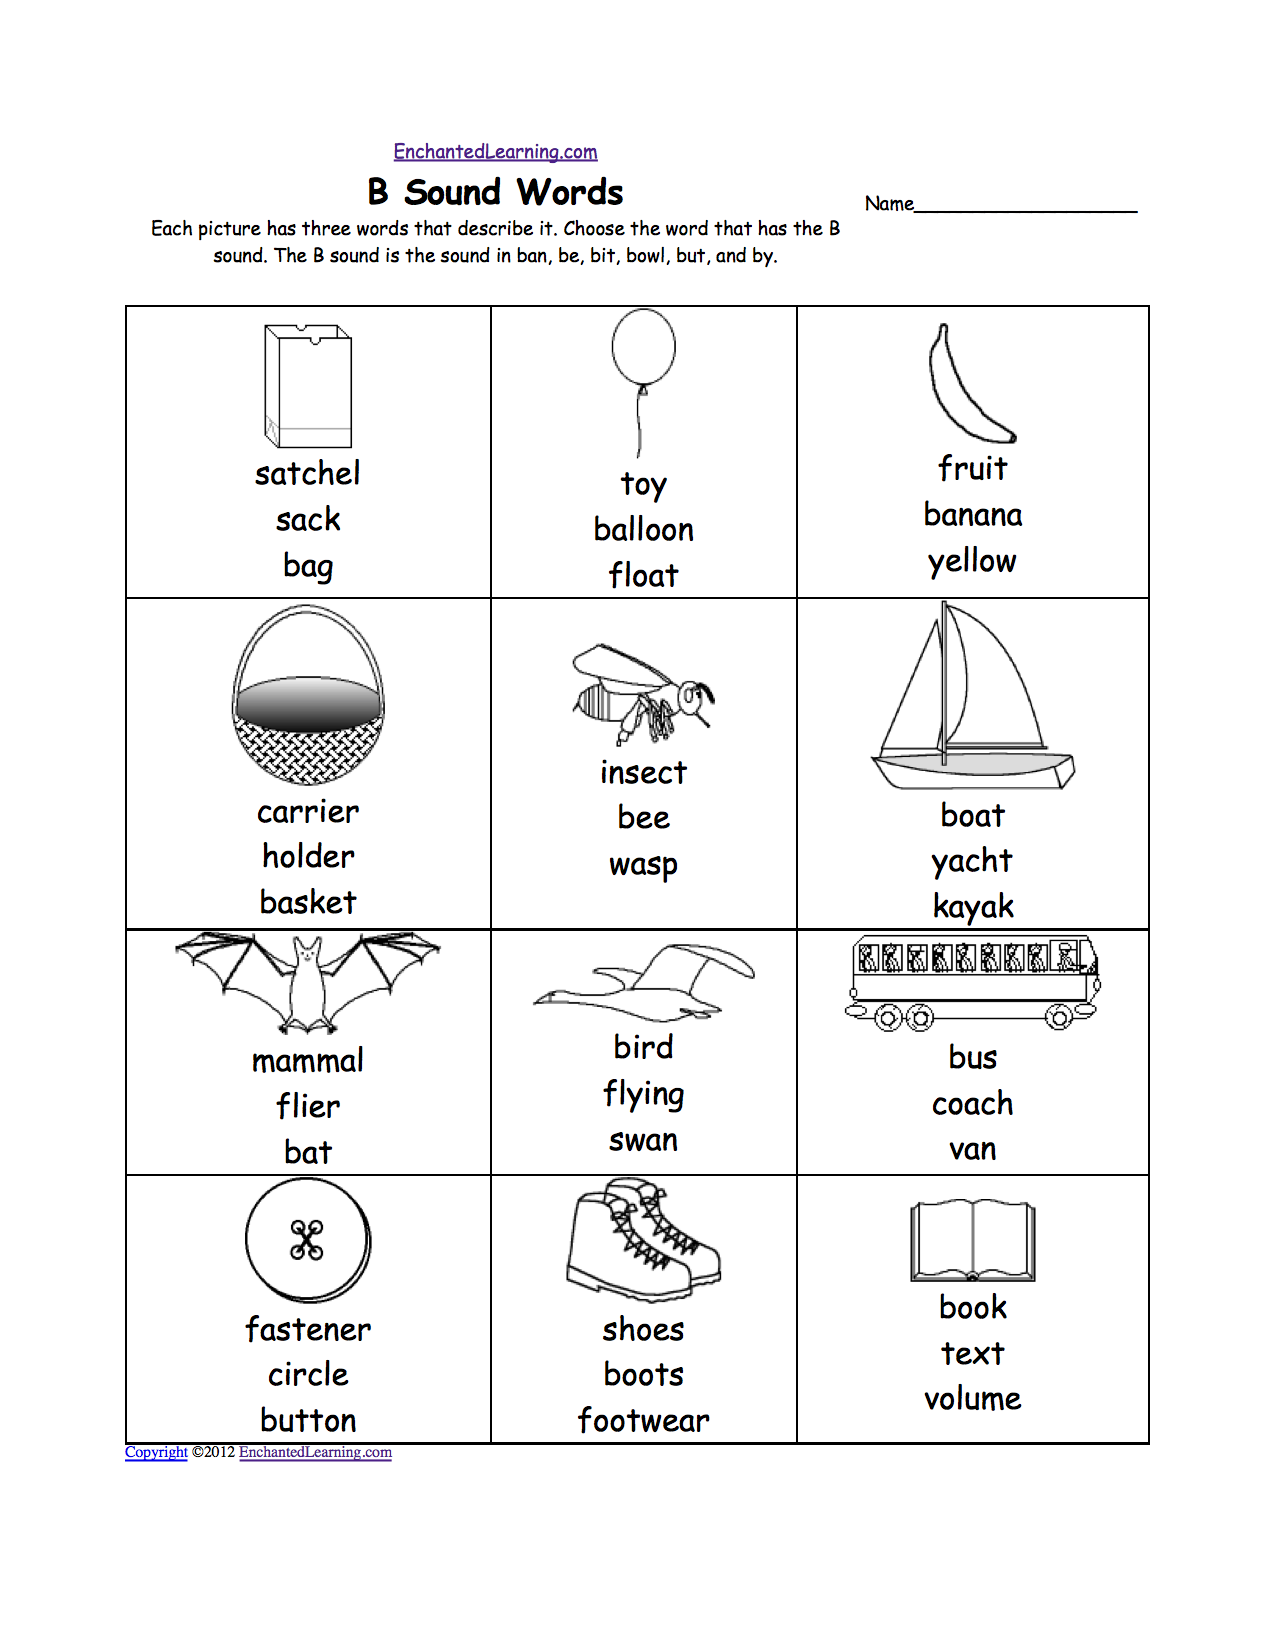 Worksheet Sounds Worksheets phonics worksheets multiple choice to print b sound worksheet each picture has three words that describe it choose the word a s